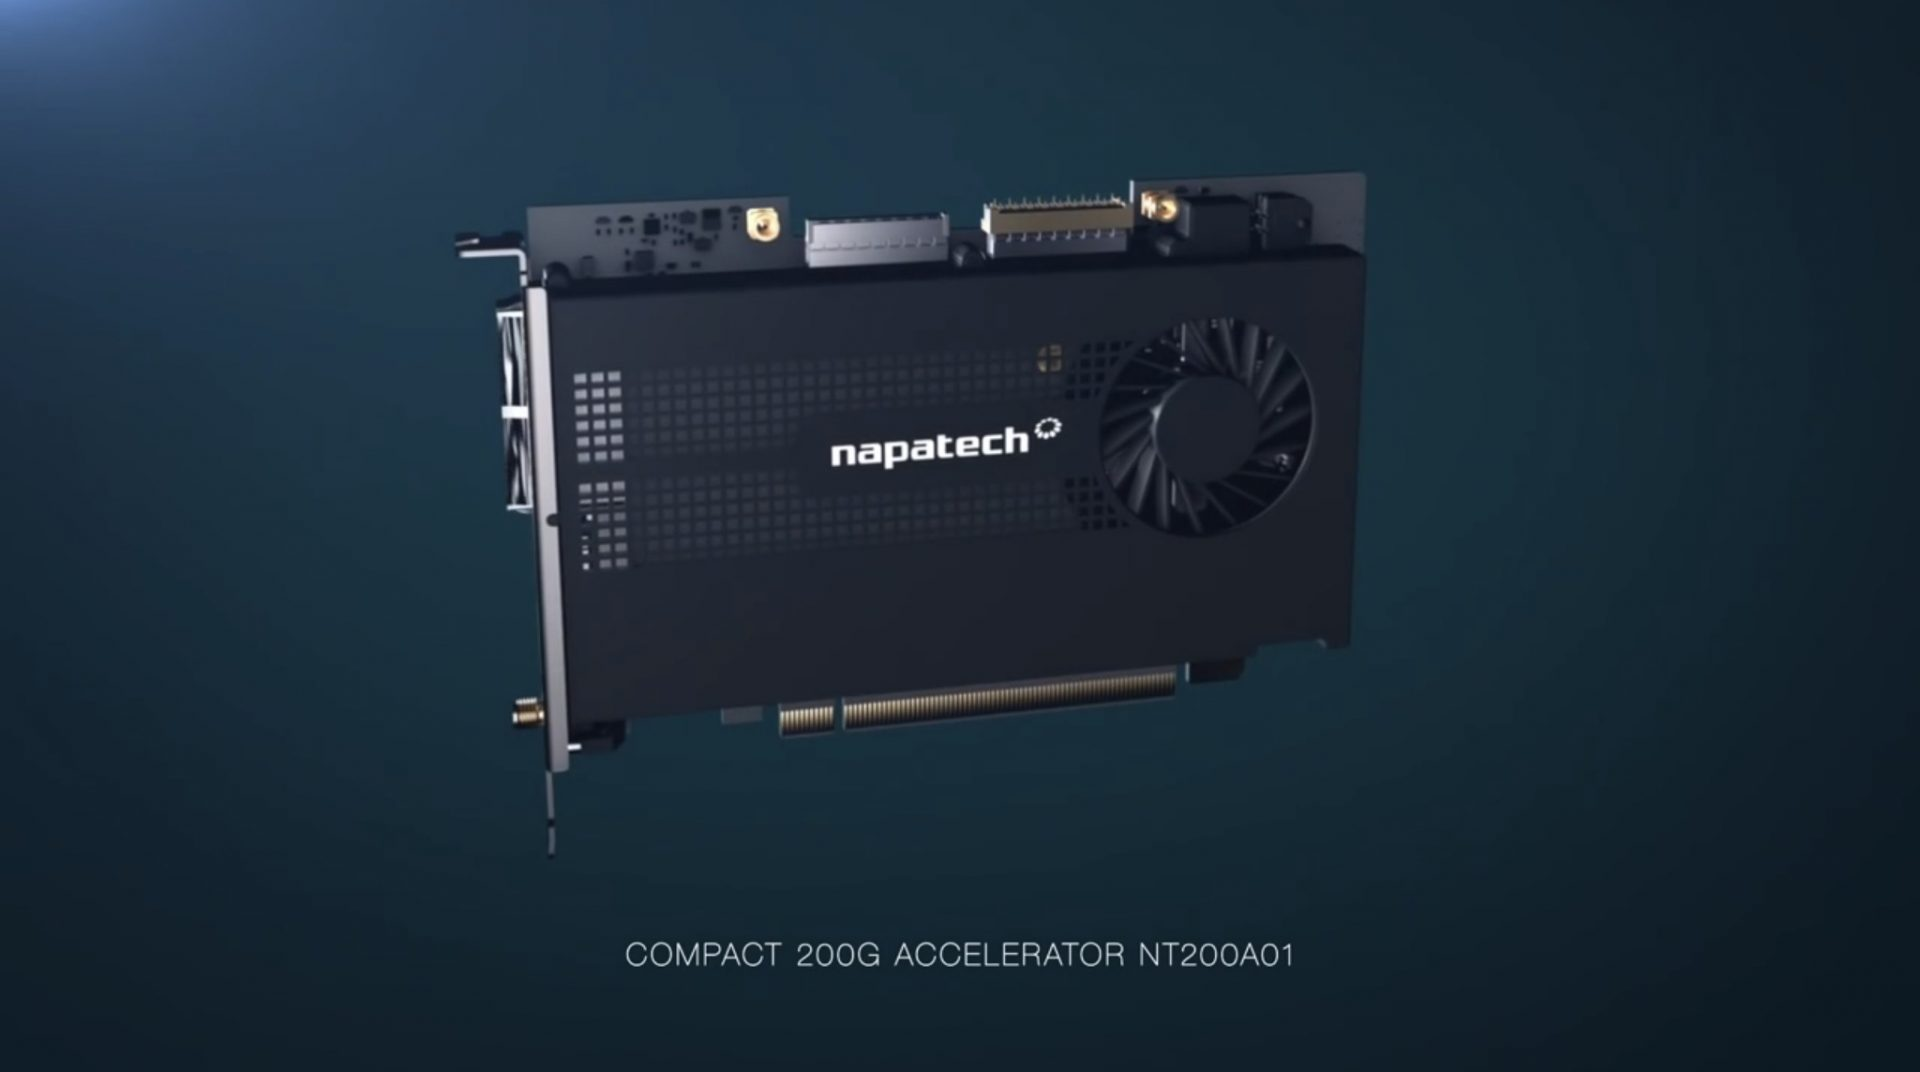 Compact 200G Network Accelerator NT200A01